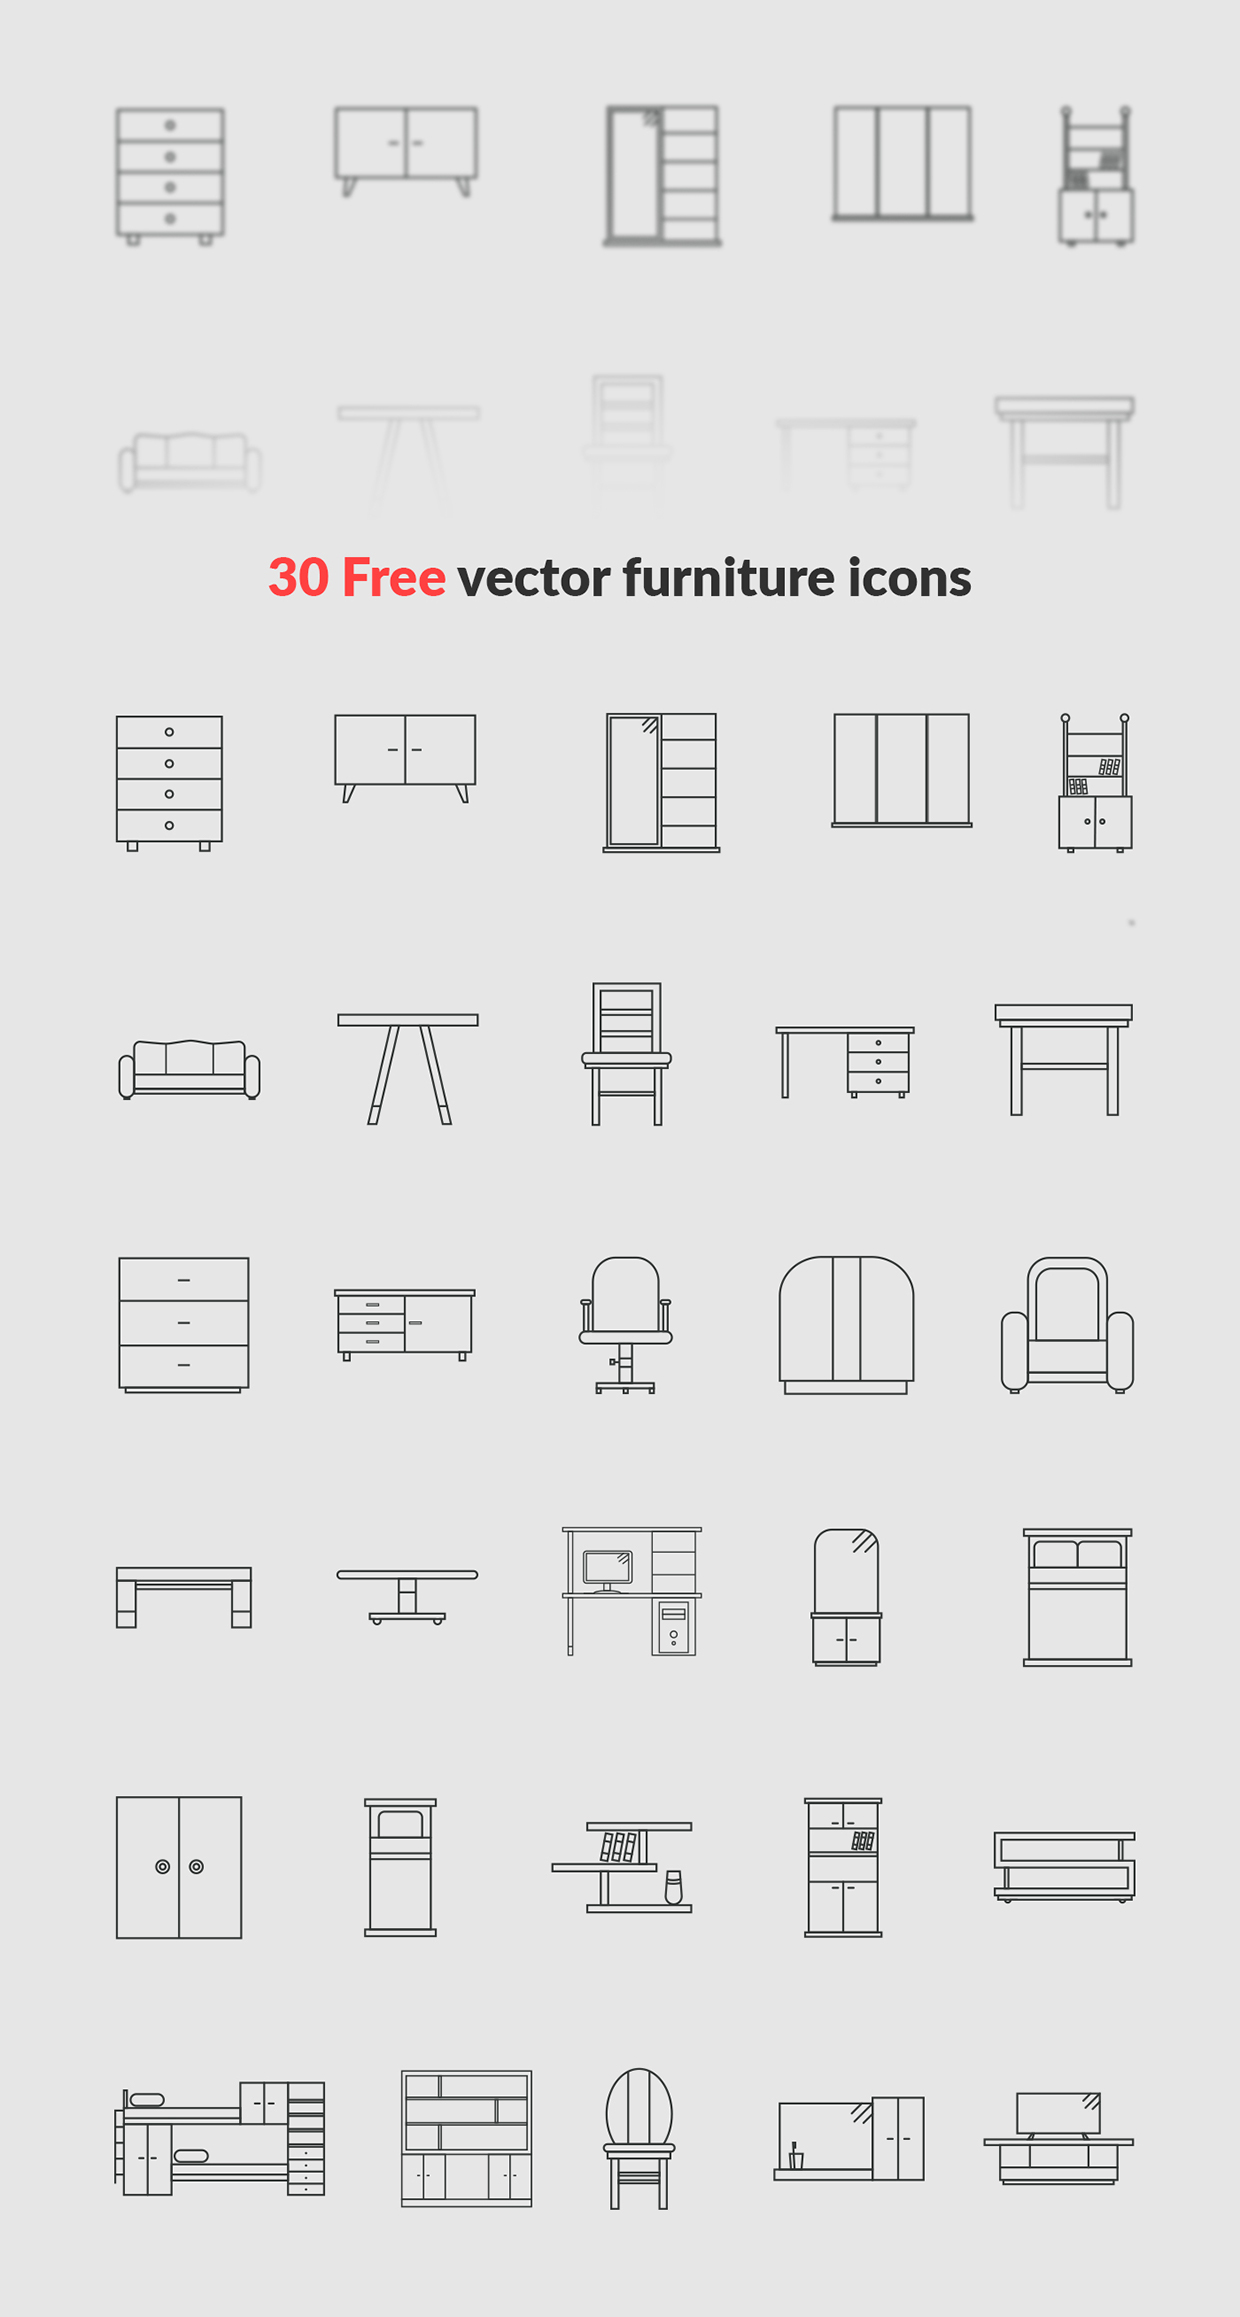 30-Free-vector-furniture-icons